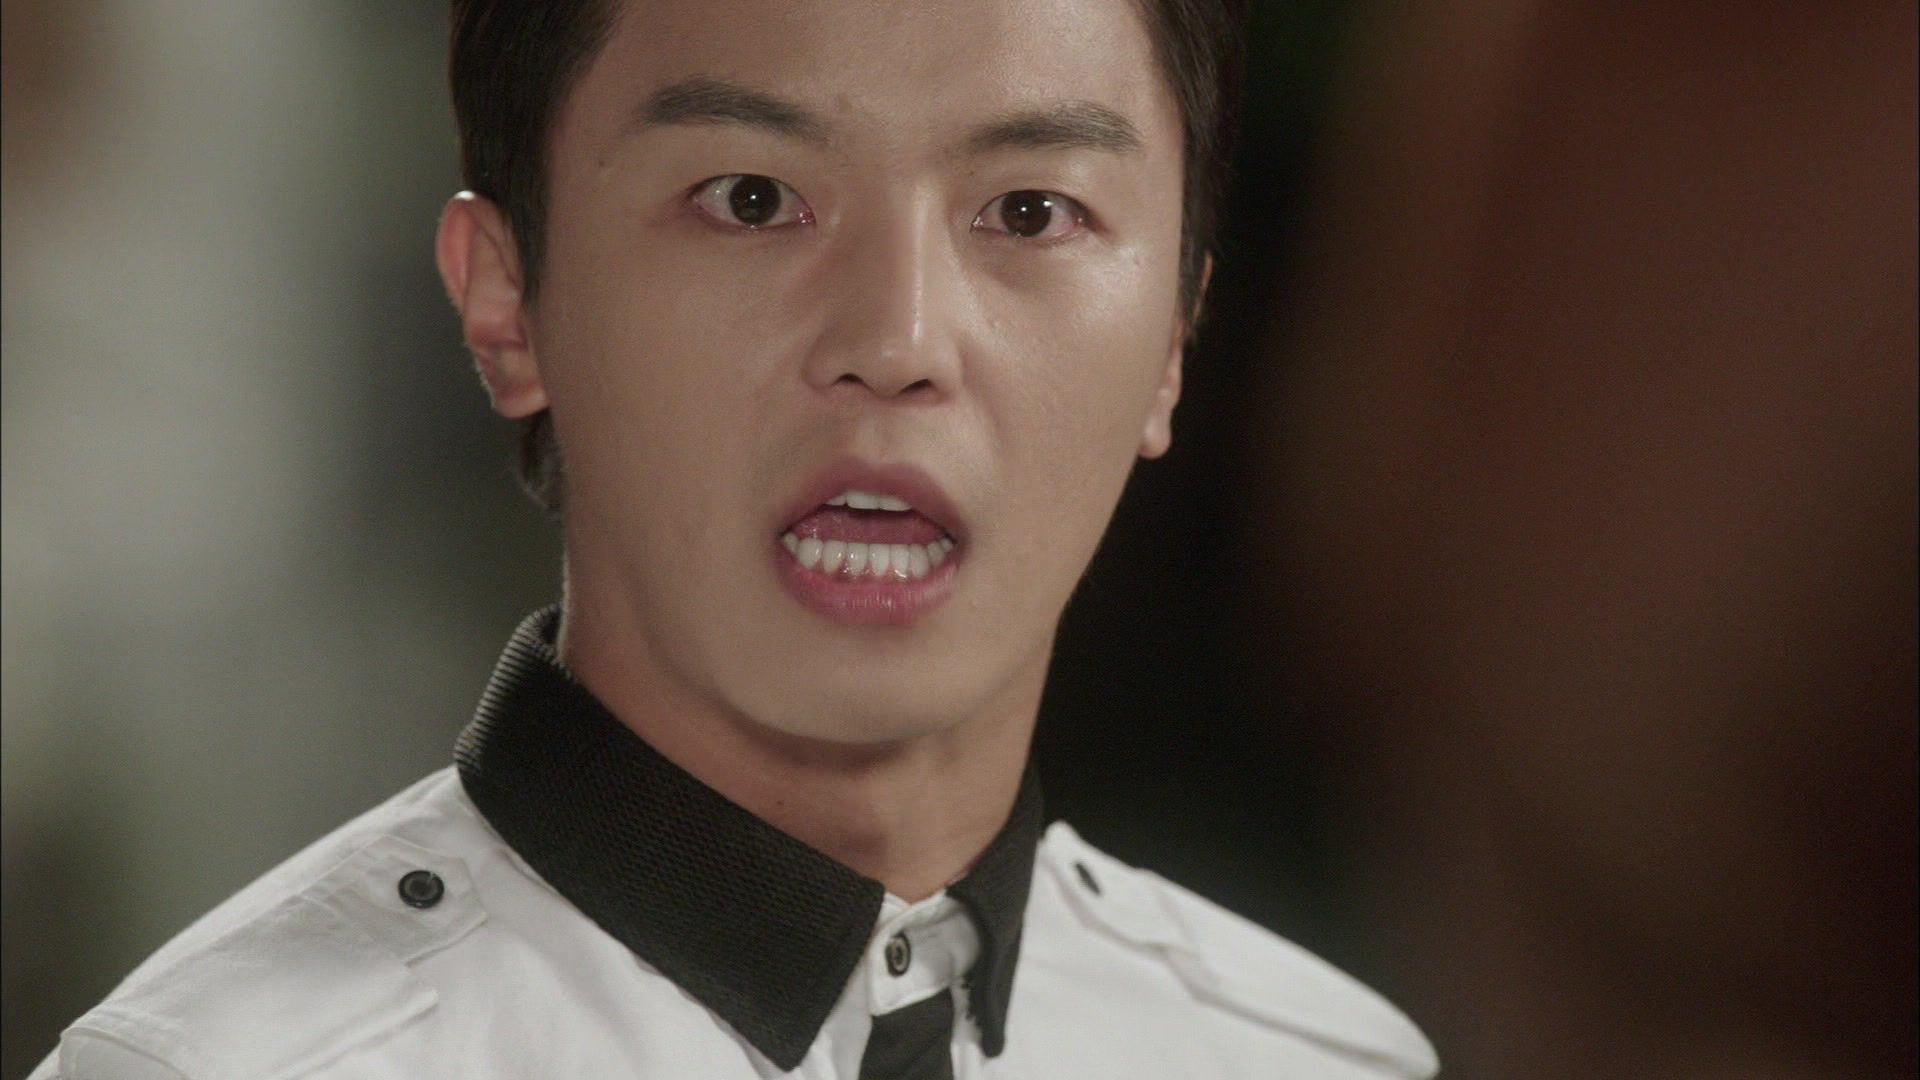 marriage not dating ep 6 kiss scene